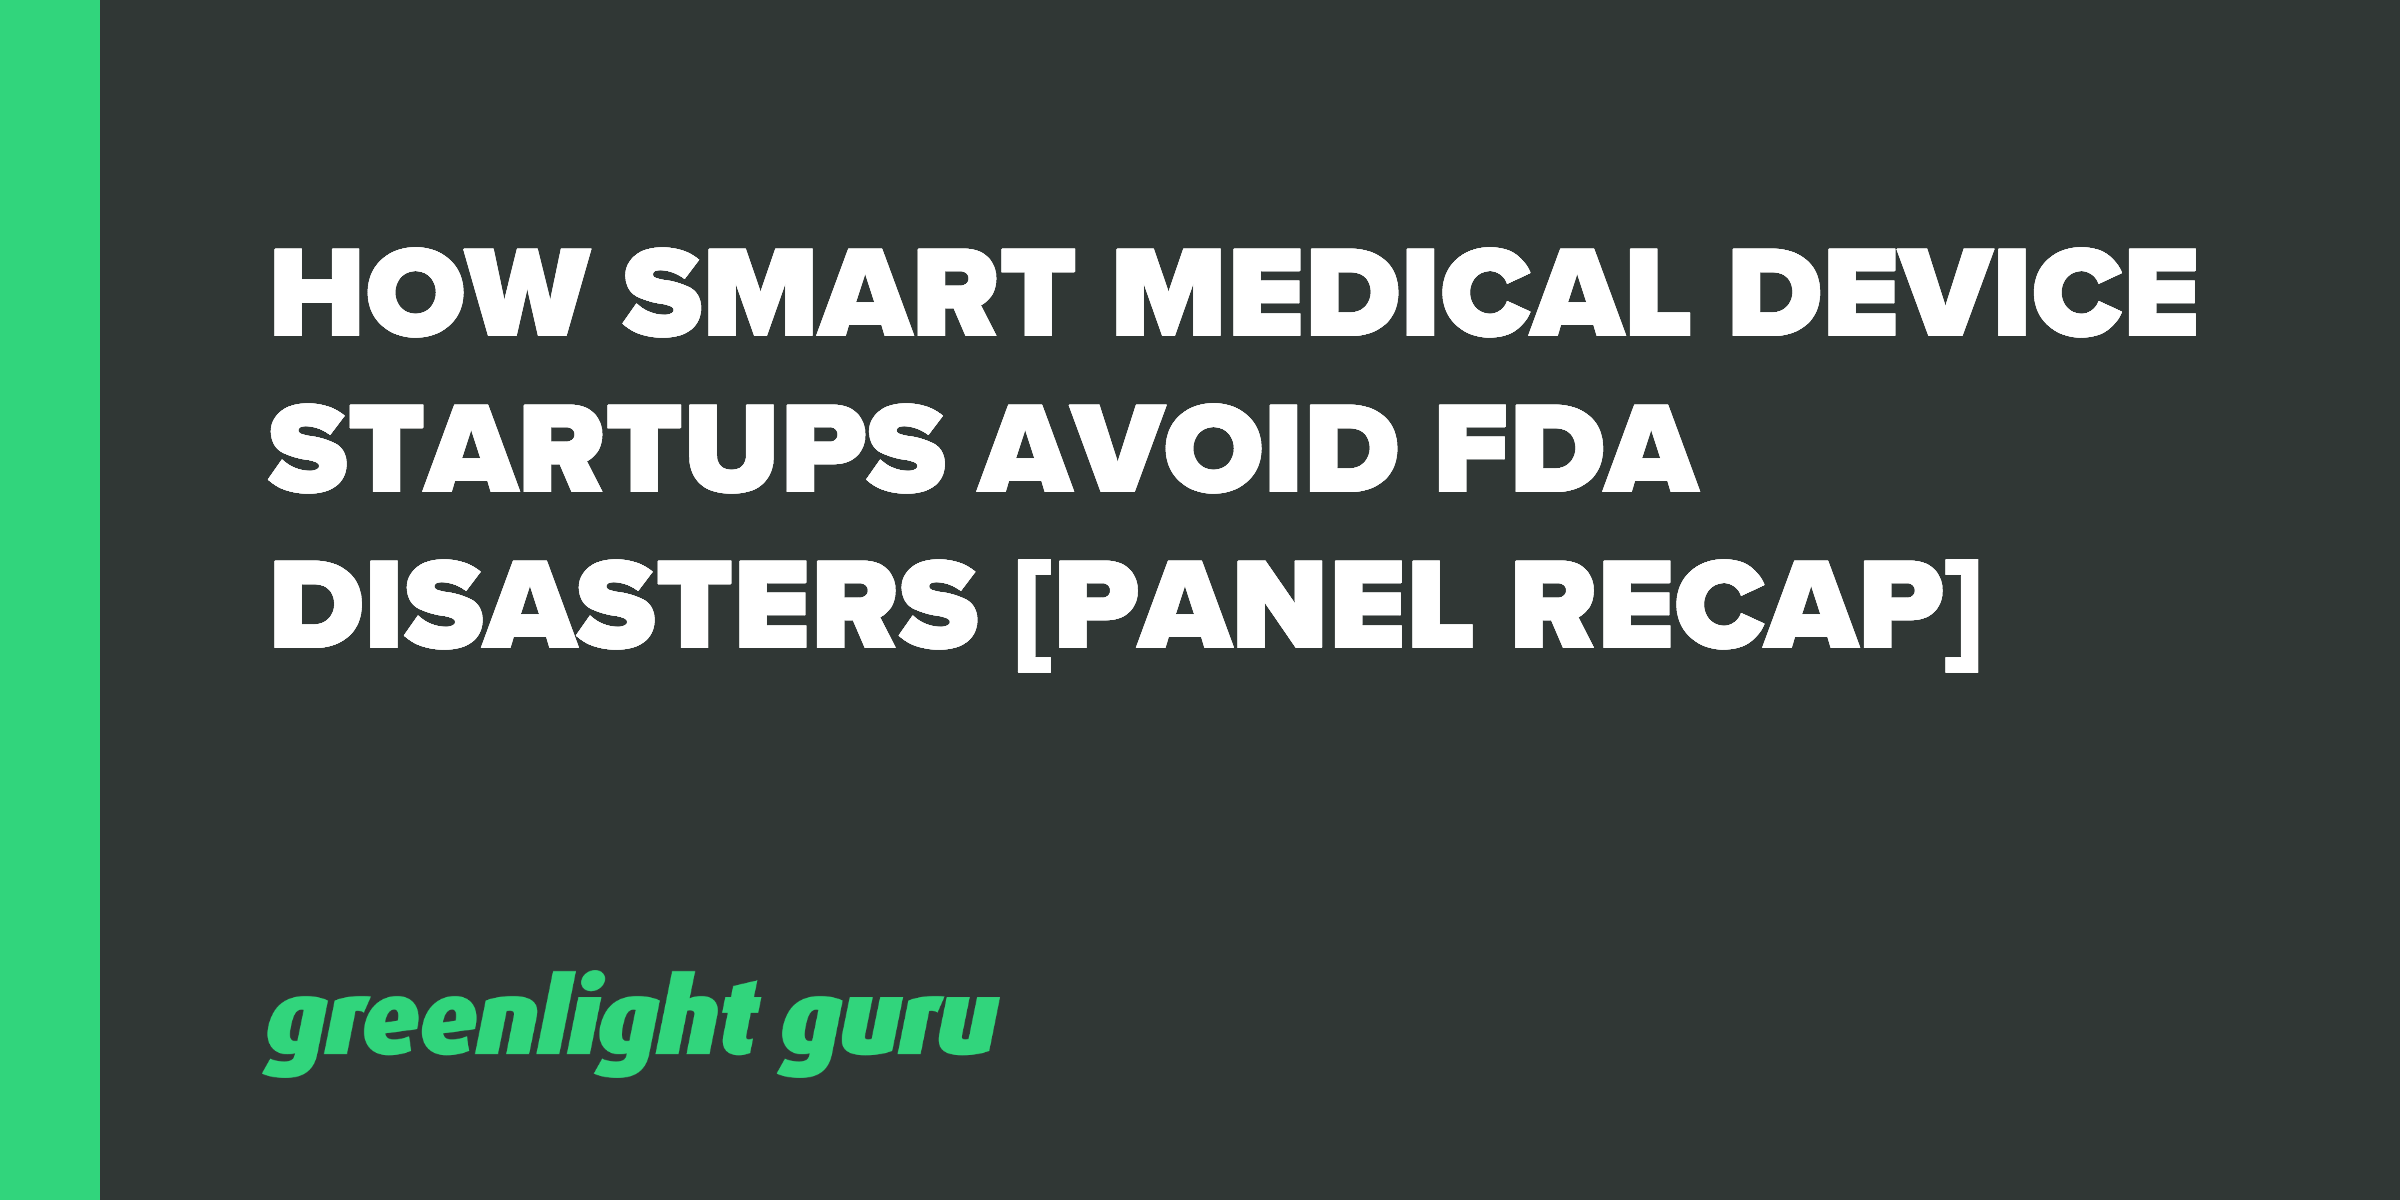 How Smart Medical Device Startups Avoid FDA Disasters [Panel Recap] - Featured Image